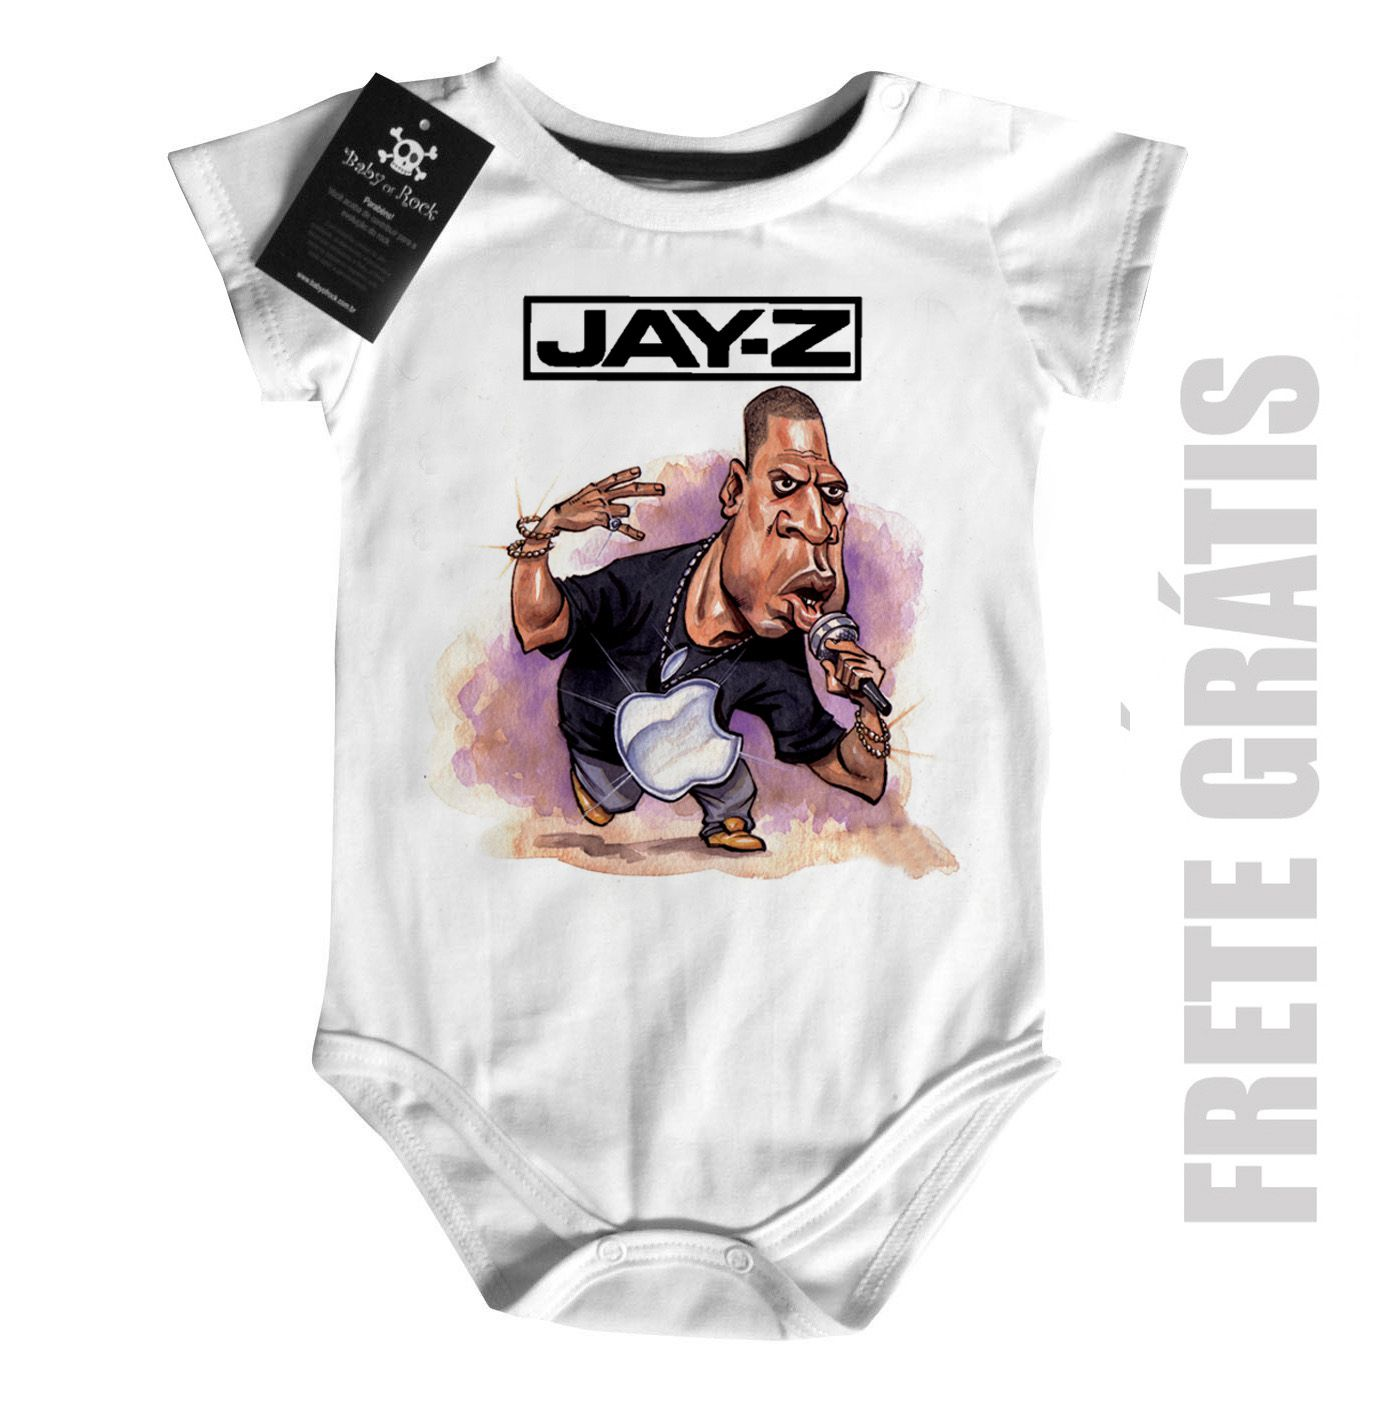 Body Rap Hip hop   Baby Jay Z - White  - Baby Monster S/A